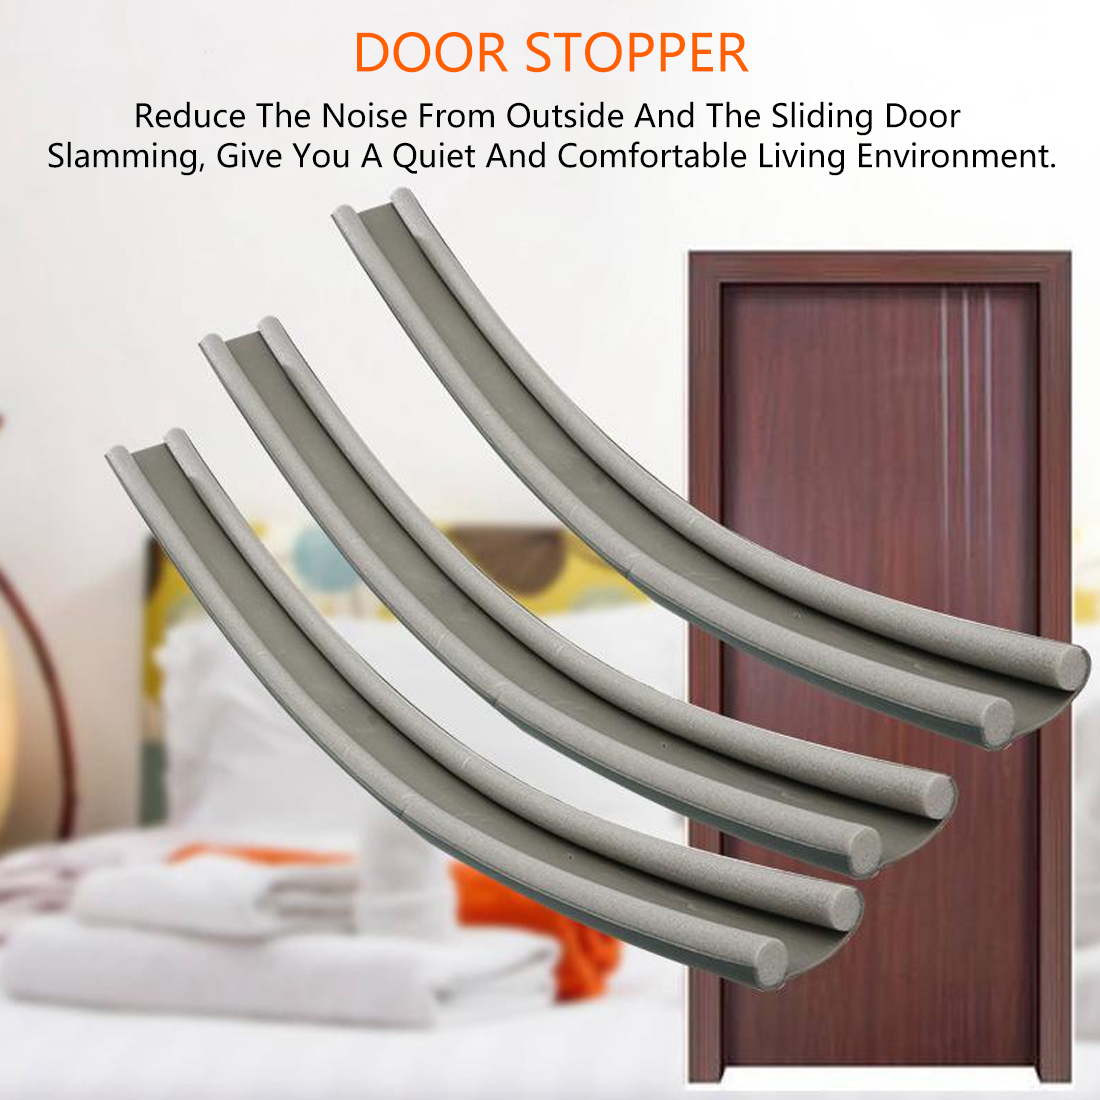 Flexible Door Bottom Sealing Strip Guard Sealer Stopper Door Weatherstrip Guard Wind Dust Blocker Sealer Stopper Door Seal 95CM